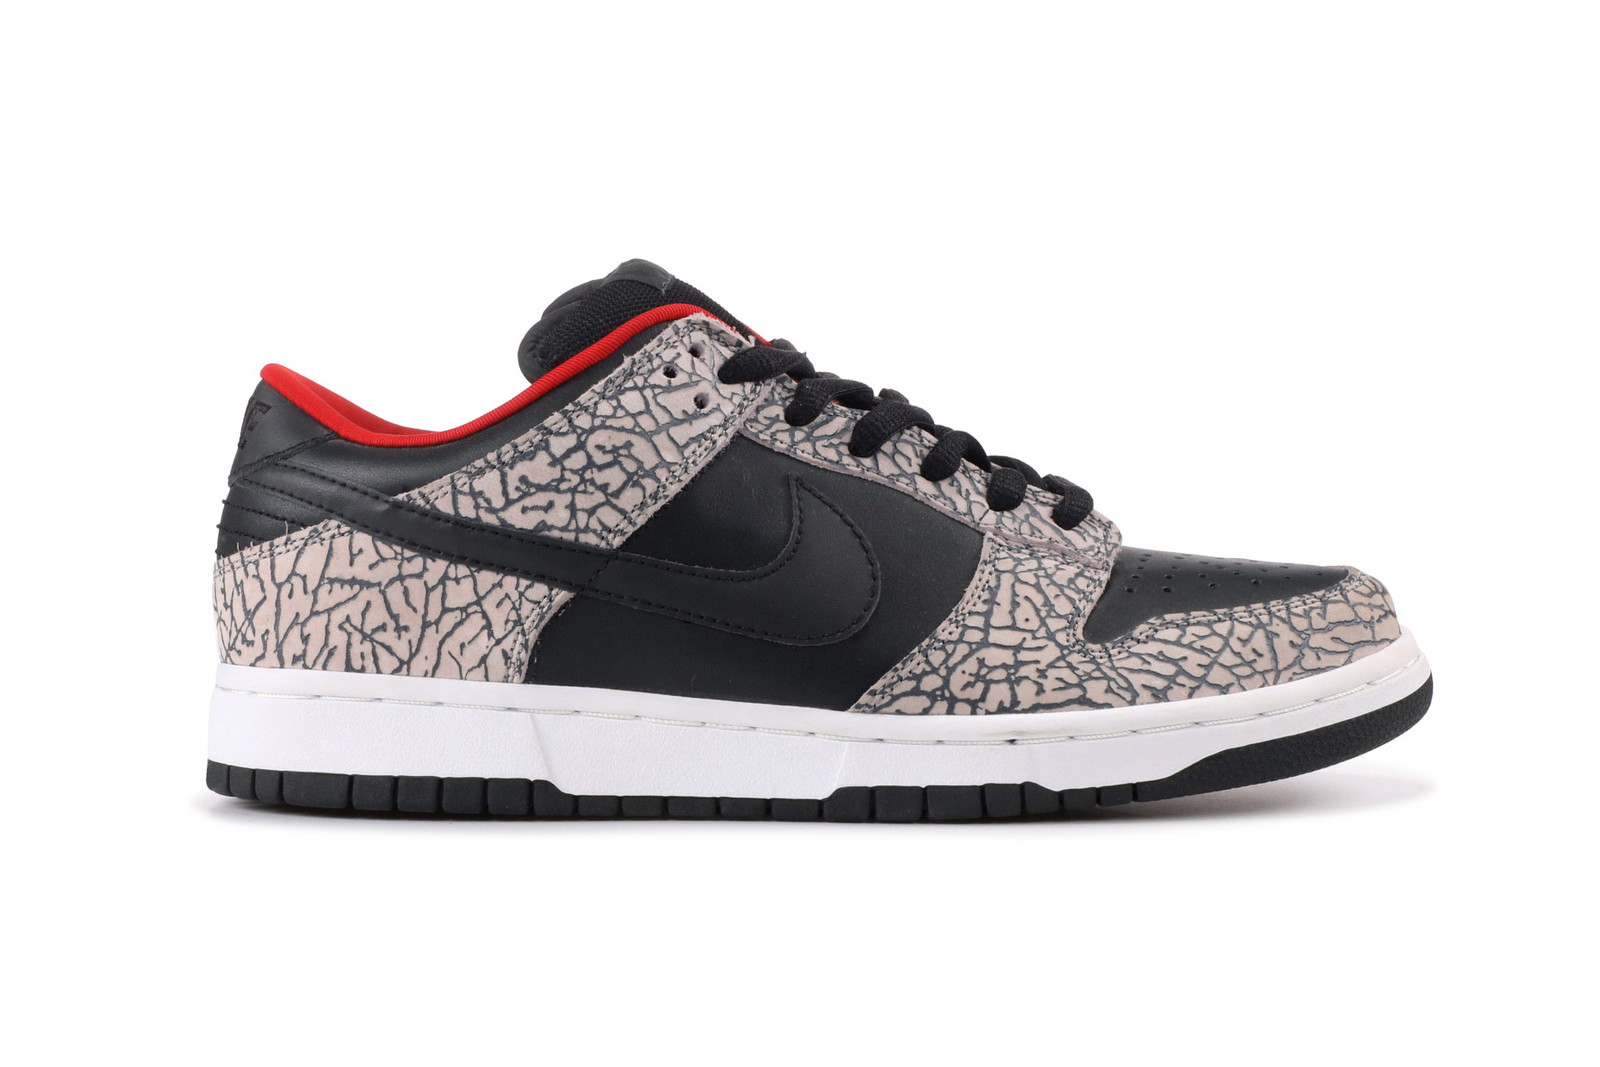 b67eb1d1569c 2002  Nike Dunk Low Pro SB Supreme (Black Cement)